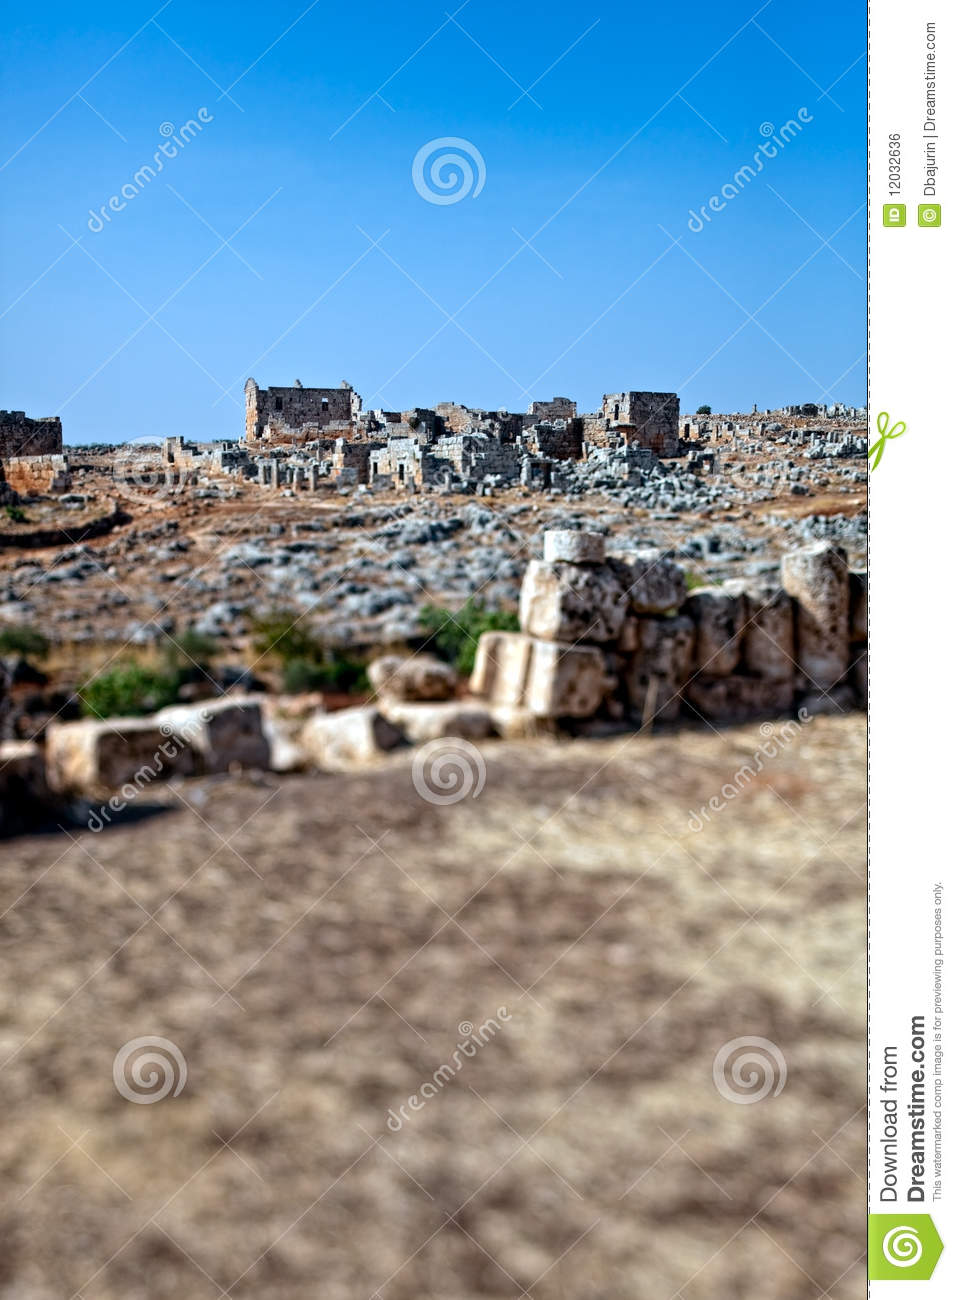 Syria - The Dead Cities